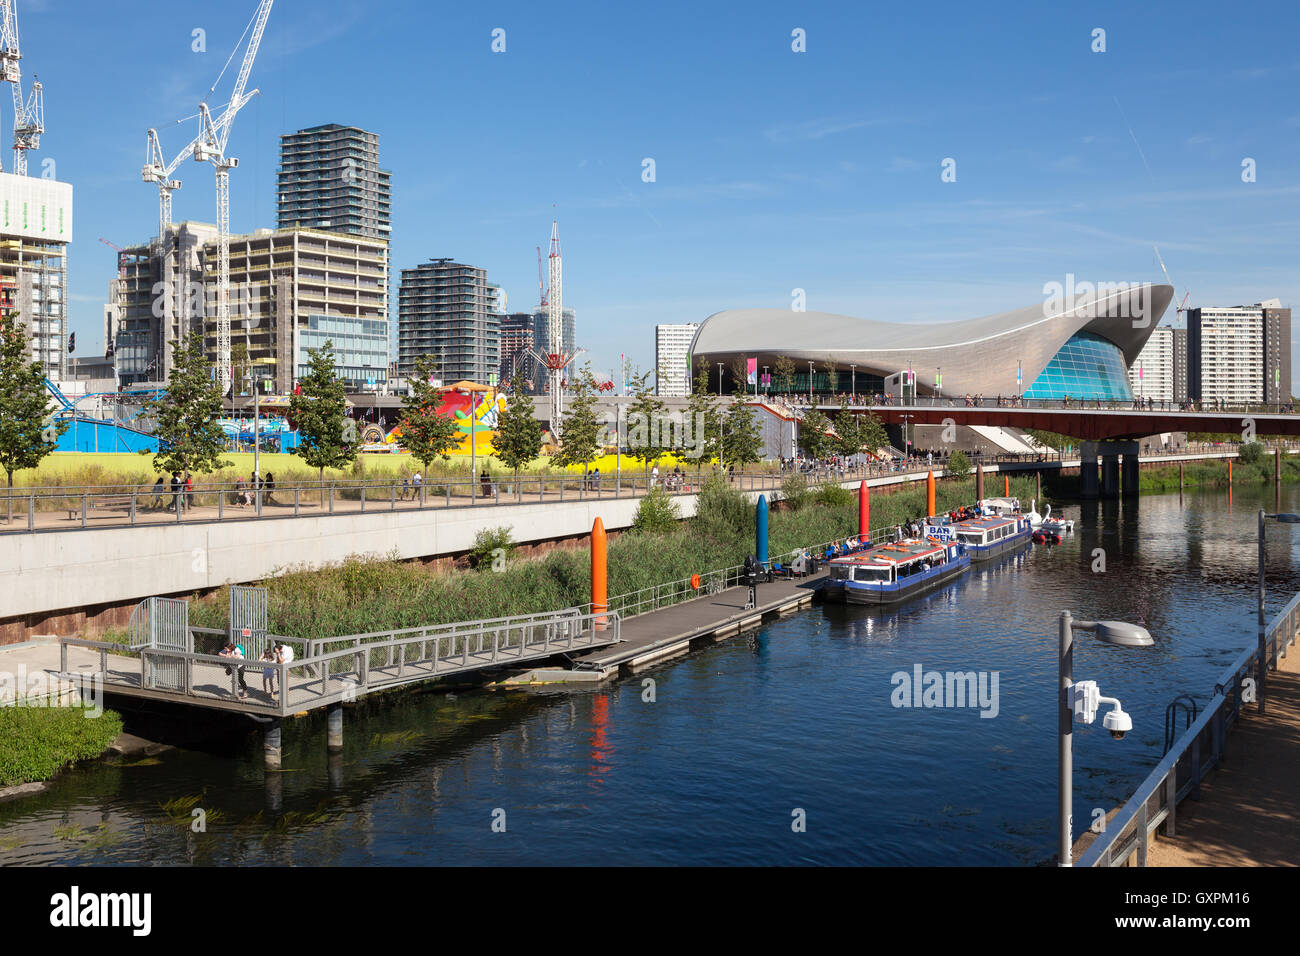 Building of the new International Quarter can be seen next to the London Aquatics Centre in East London. - Stock Image